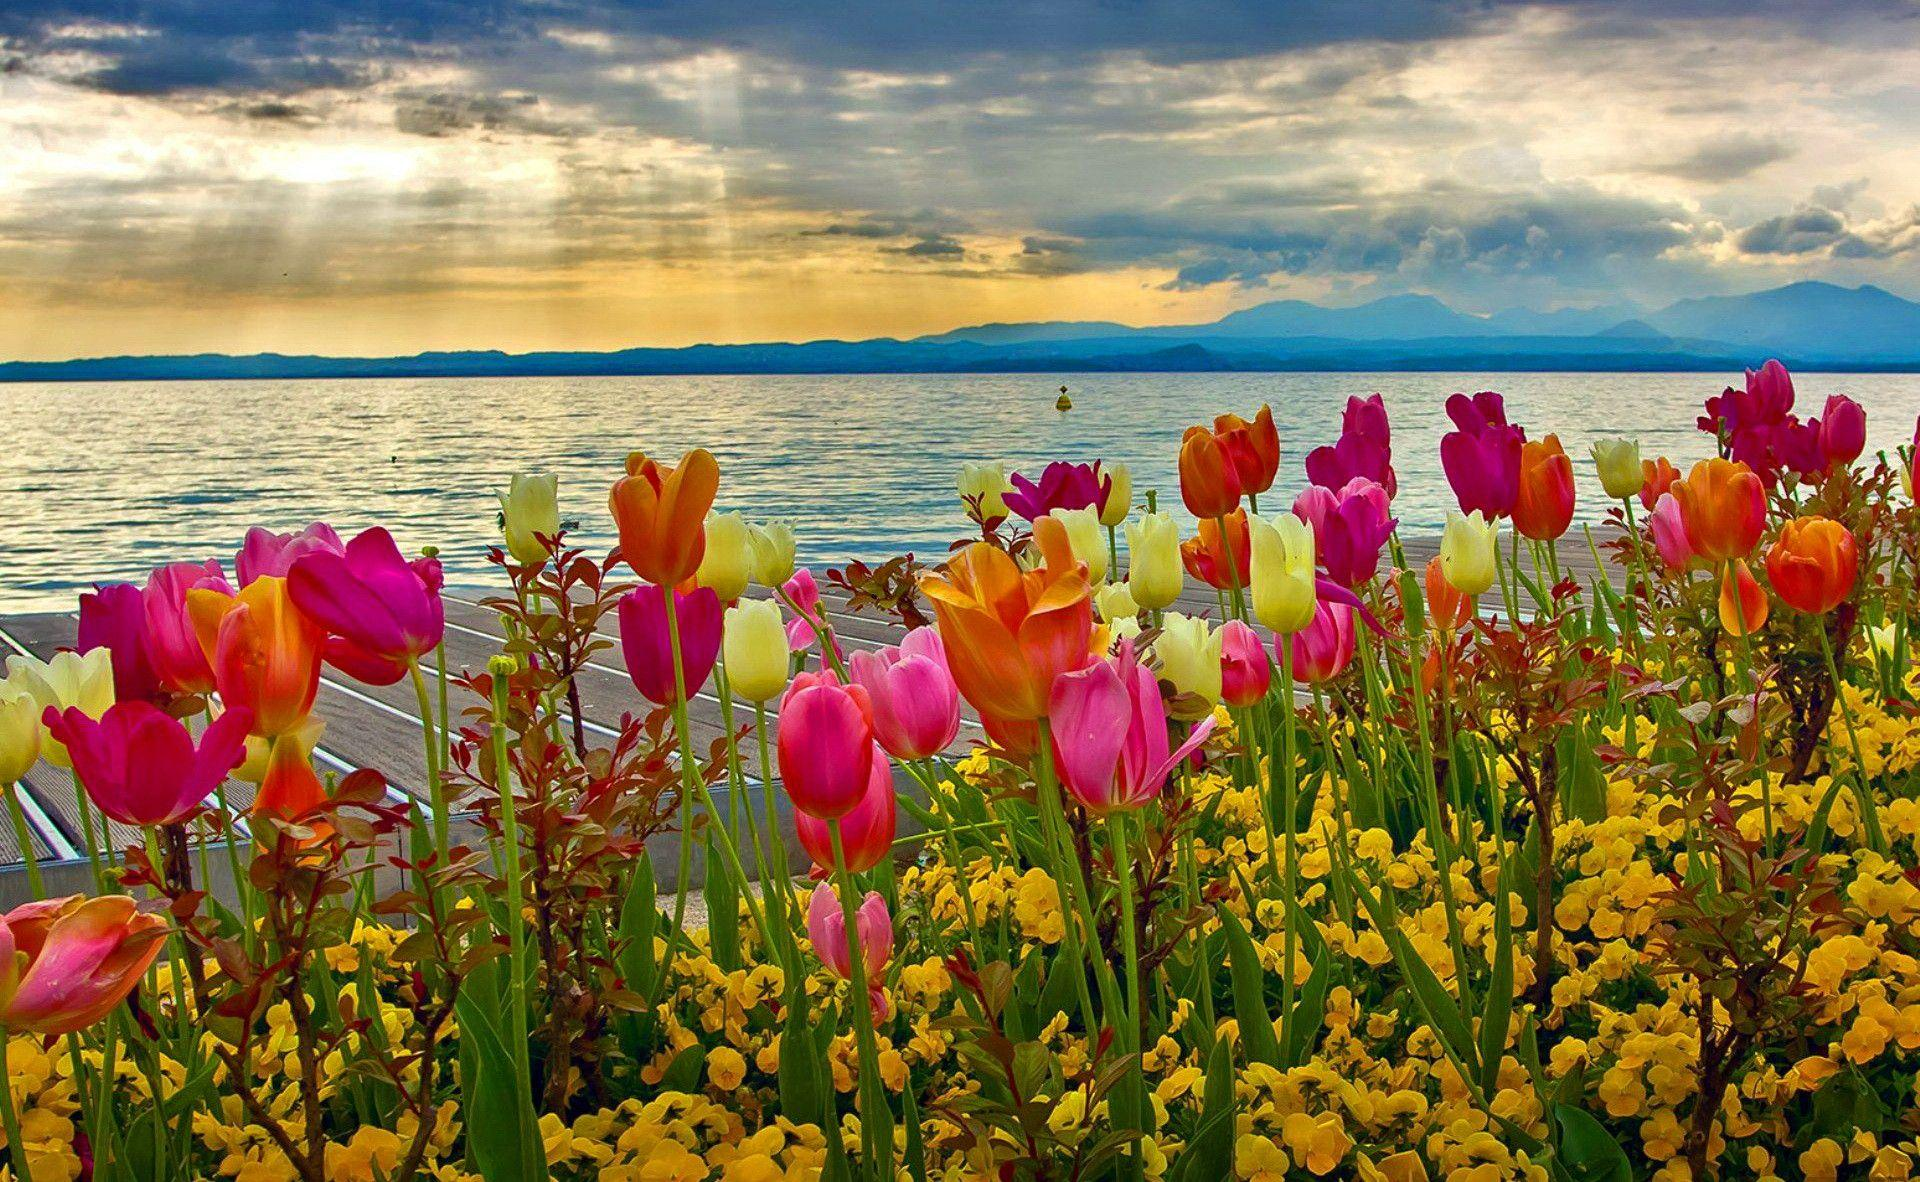 Spring flowers 2018 wallpapers wallpaper cave cool spring wallpaper for desktop 2 diariovea mightylinksfo